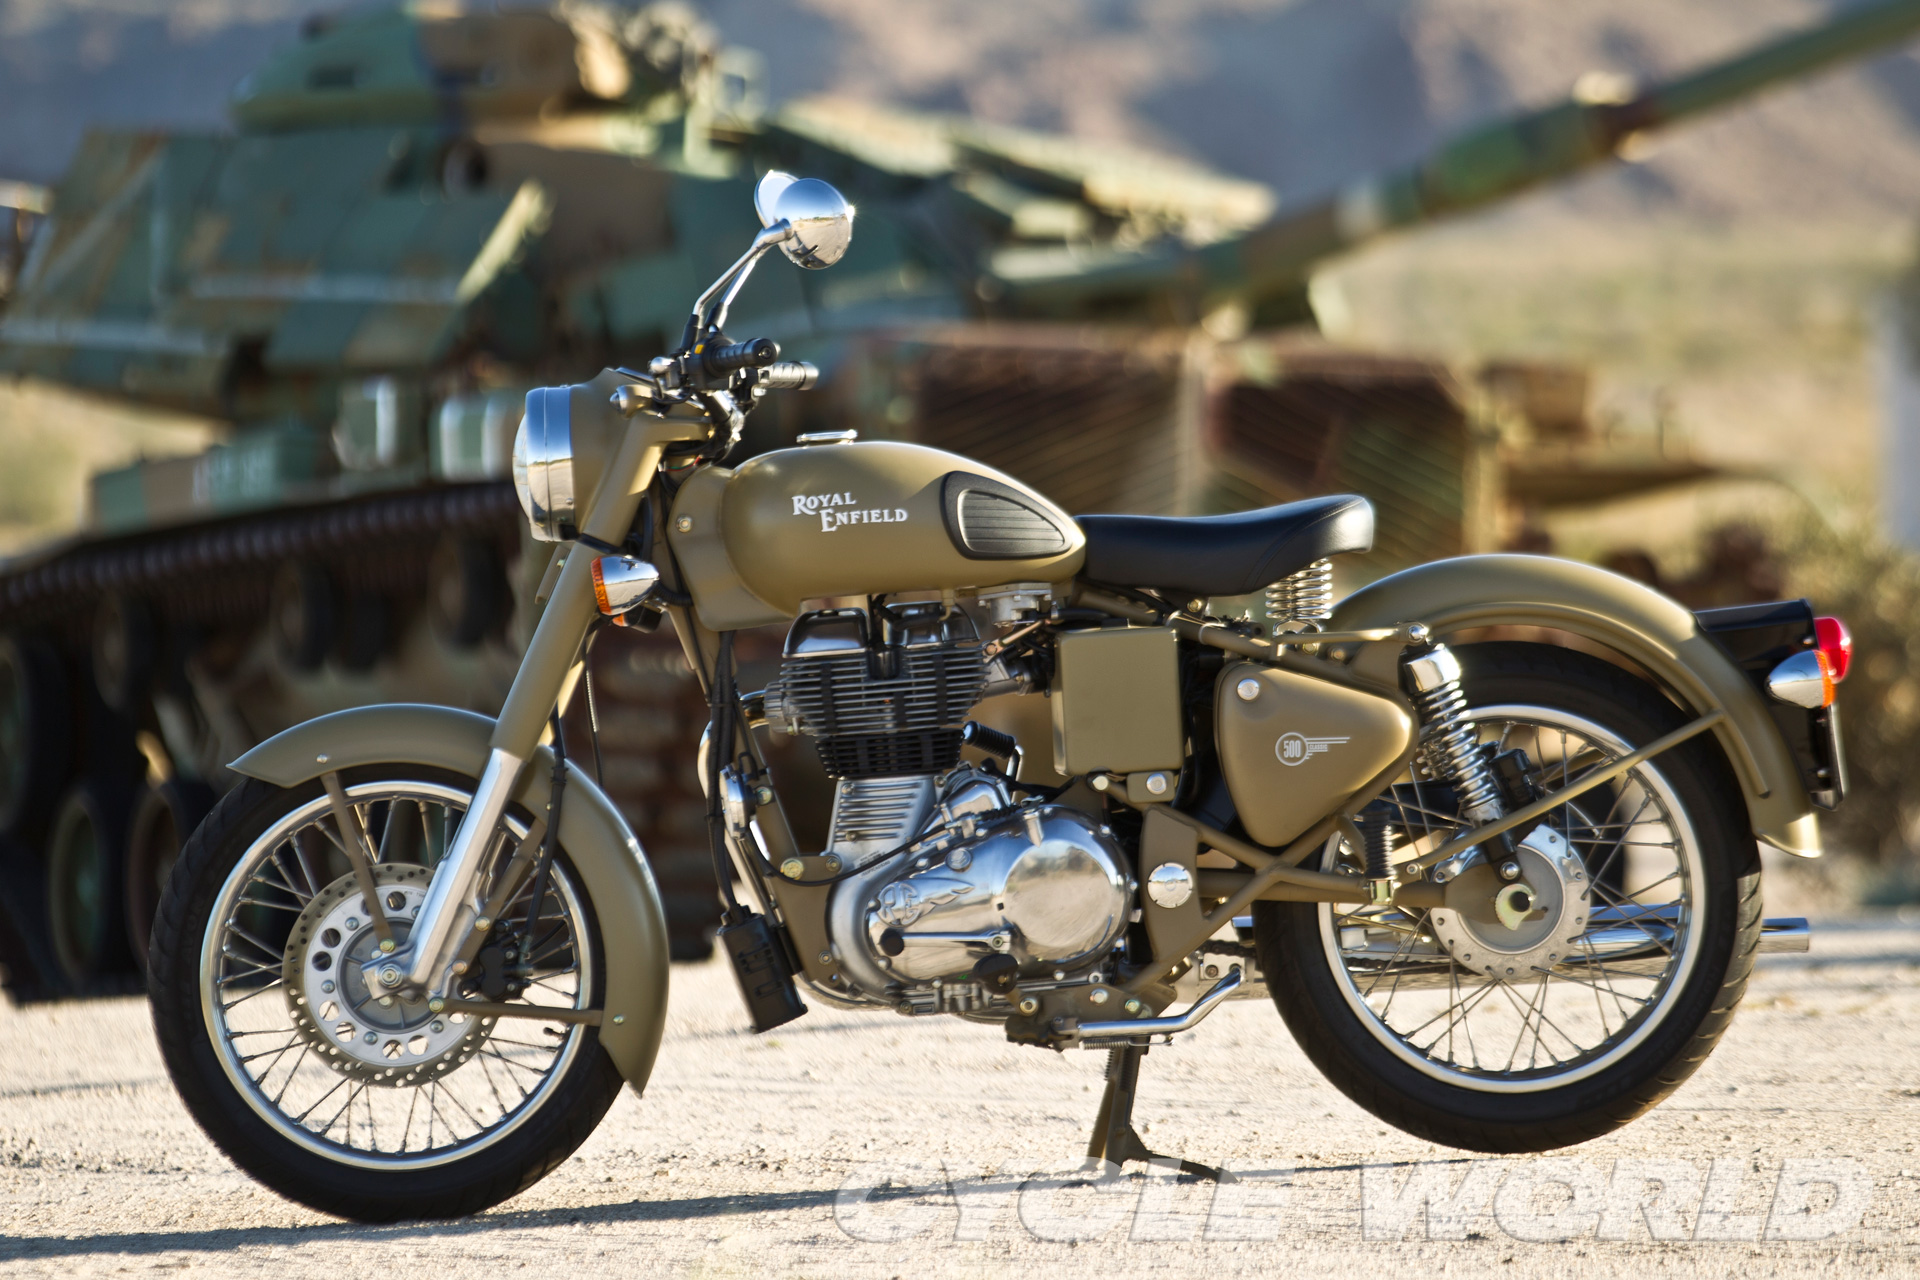 Royal Enfield Bullet 500 Army 1992 images #123386